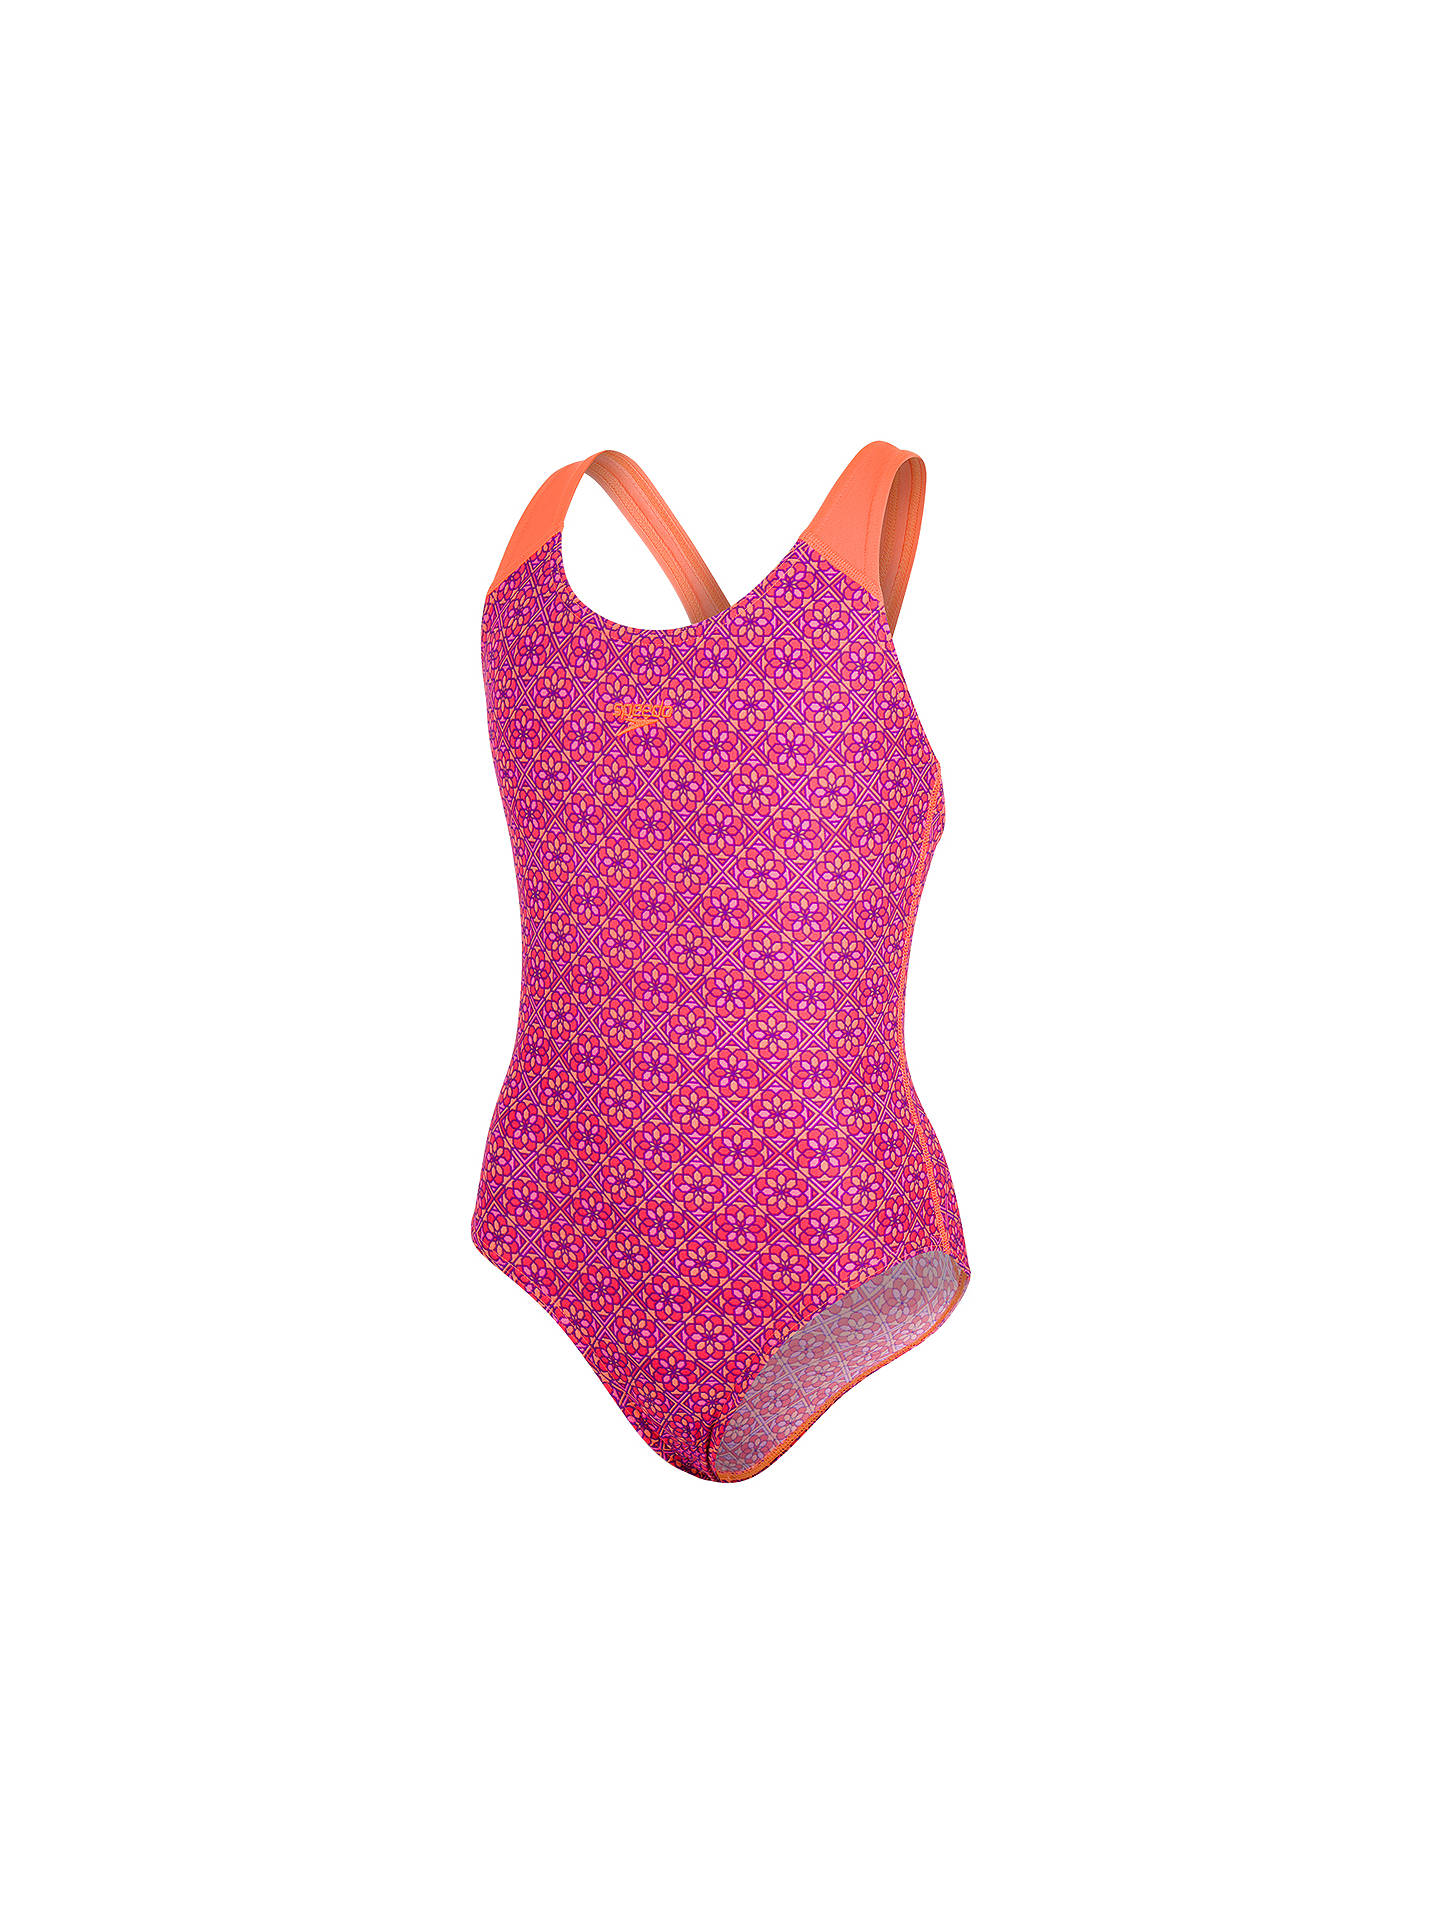 "Buy Speedo Girls' Speedo Splashback Swimsuit, Polka Spot Violet/Fluo Orange, Chest 26"" Online at johnlewis.com"